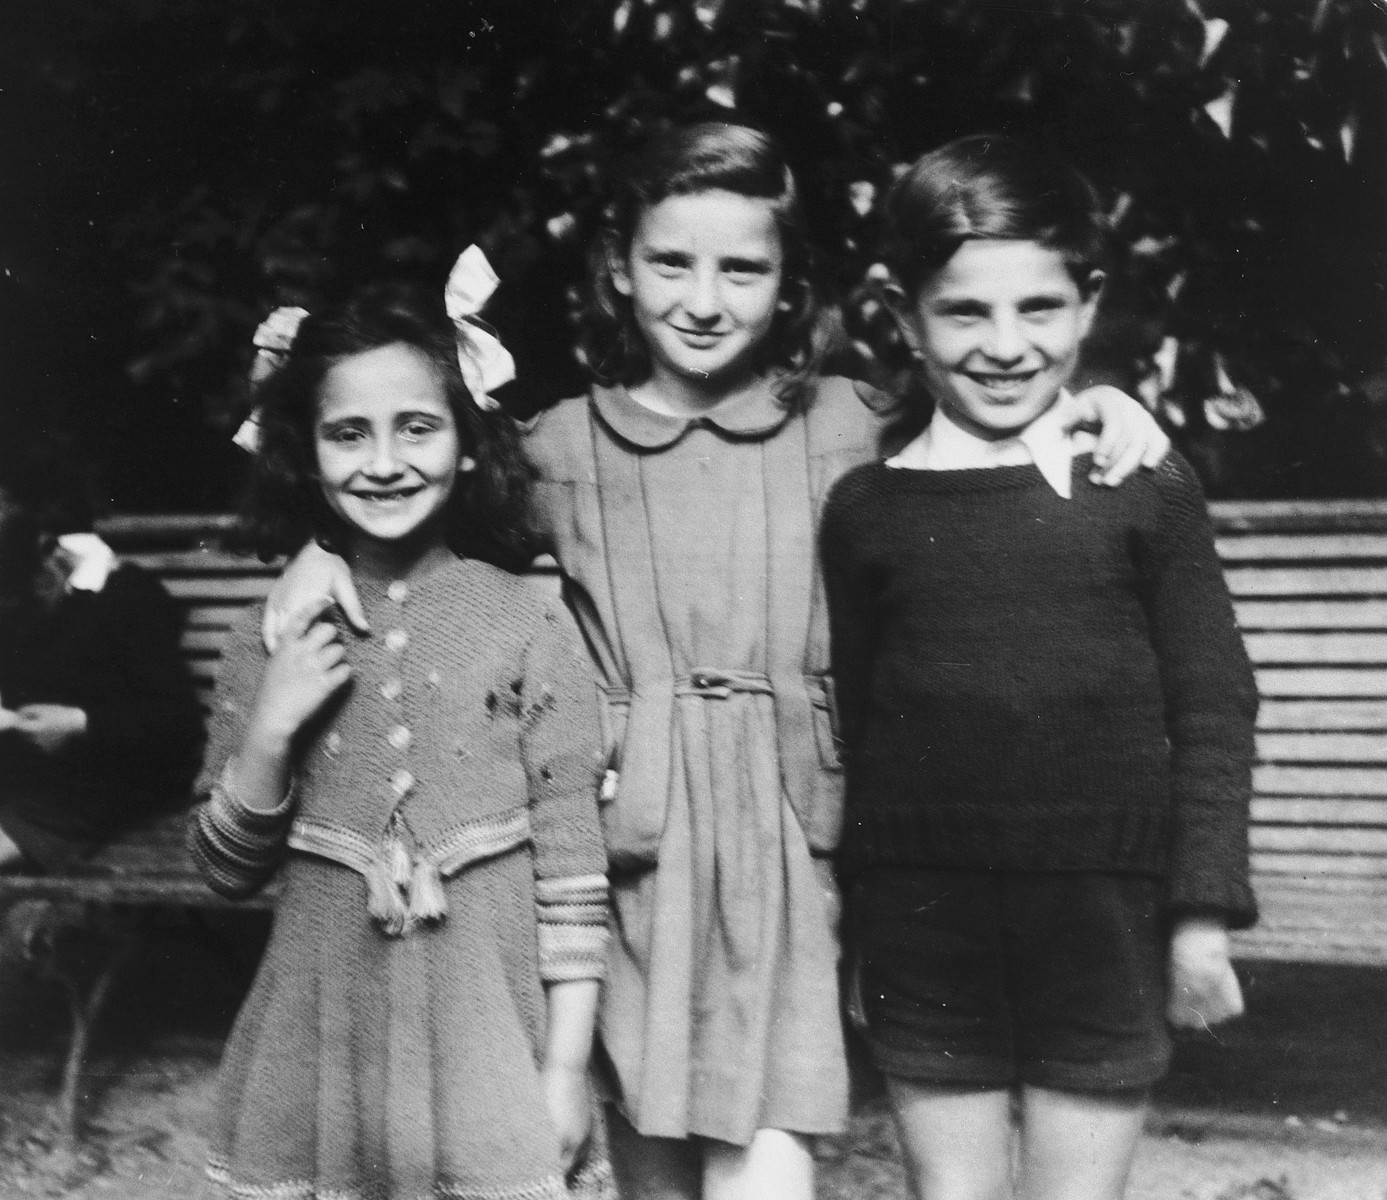 Judith Koeppel poses with her adopted sister (the daughter of her rescuer) and another child after the war.  Judith Koeppel is on the left, and Suzy Enard is in the center.